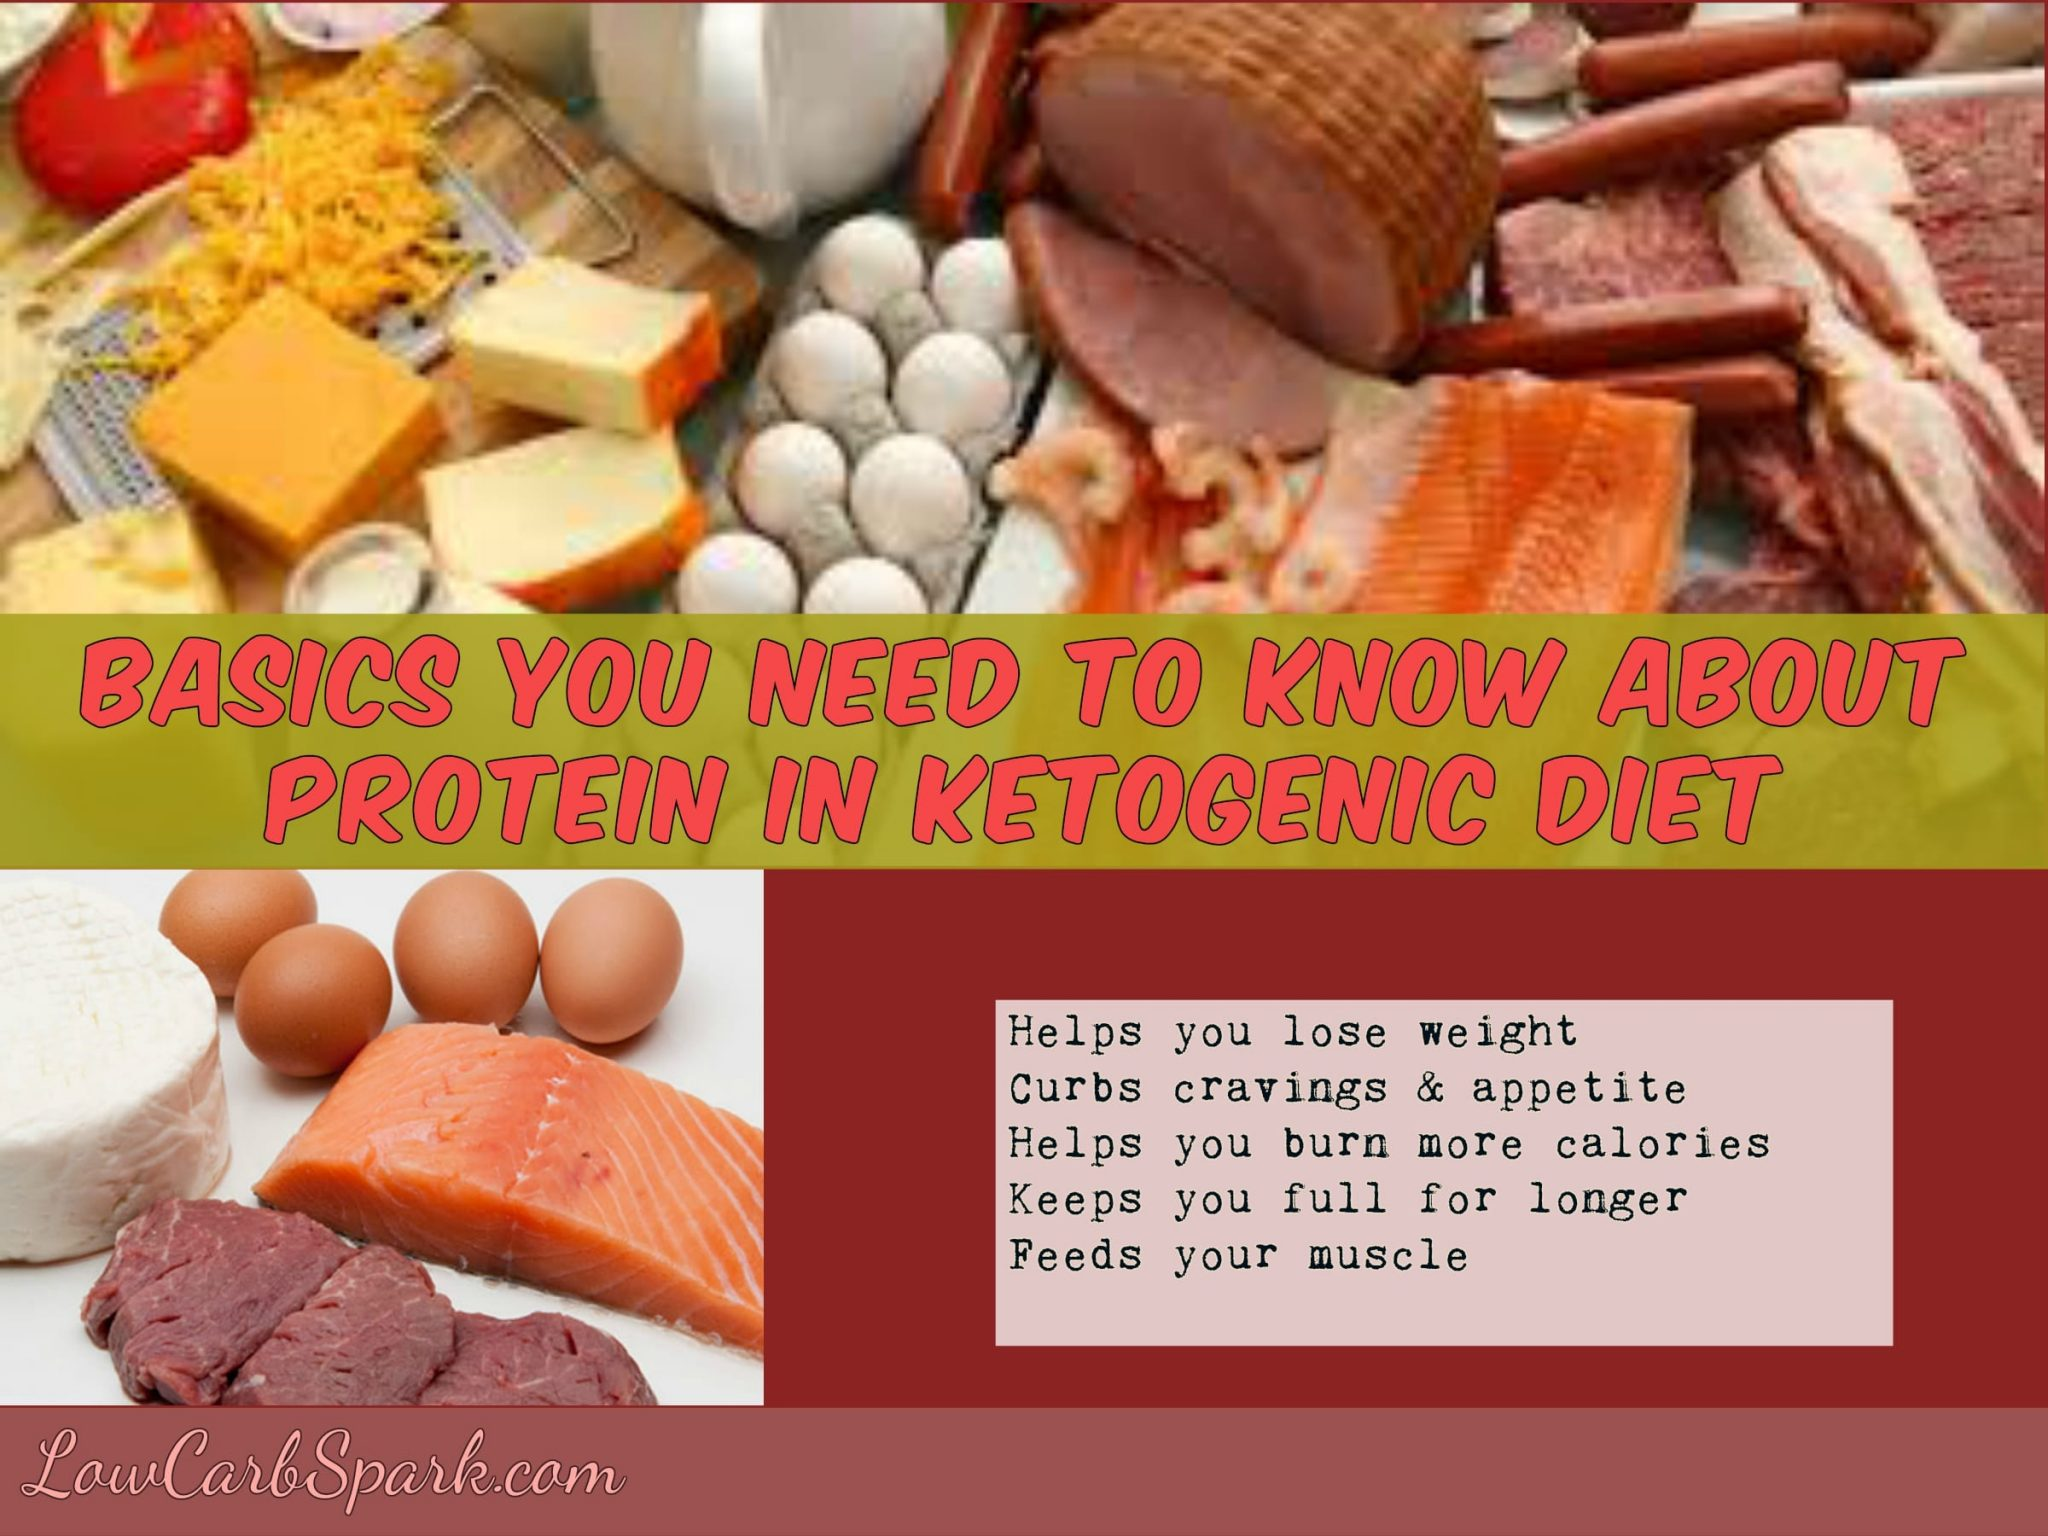 Basics you need to know about protein in Ketogenic diet